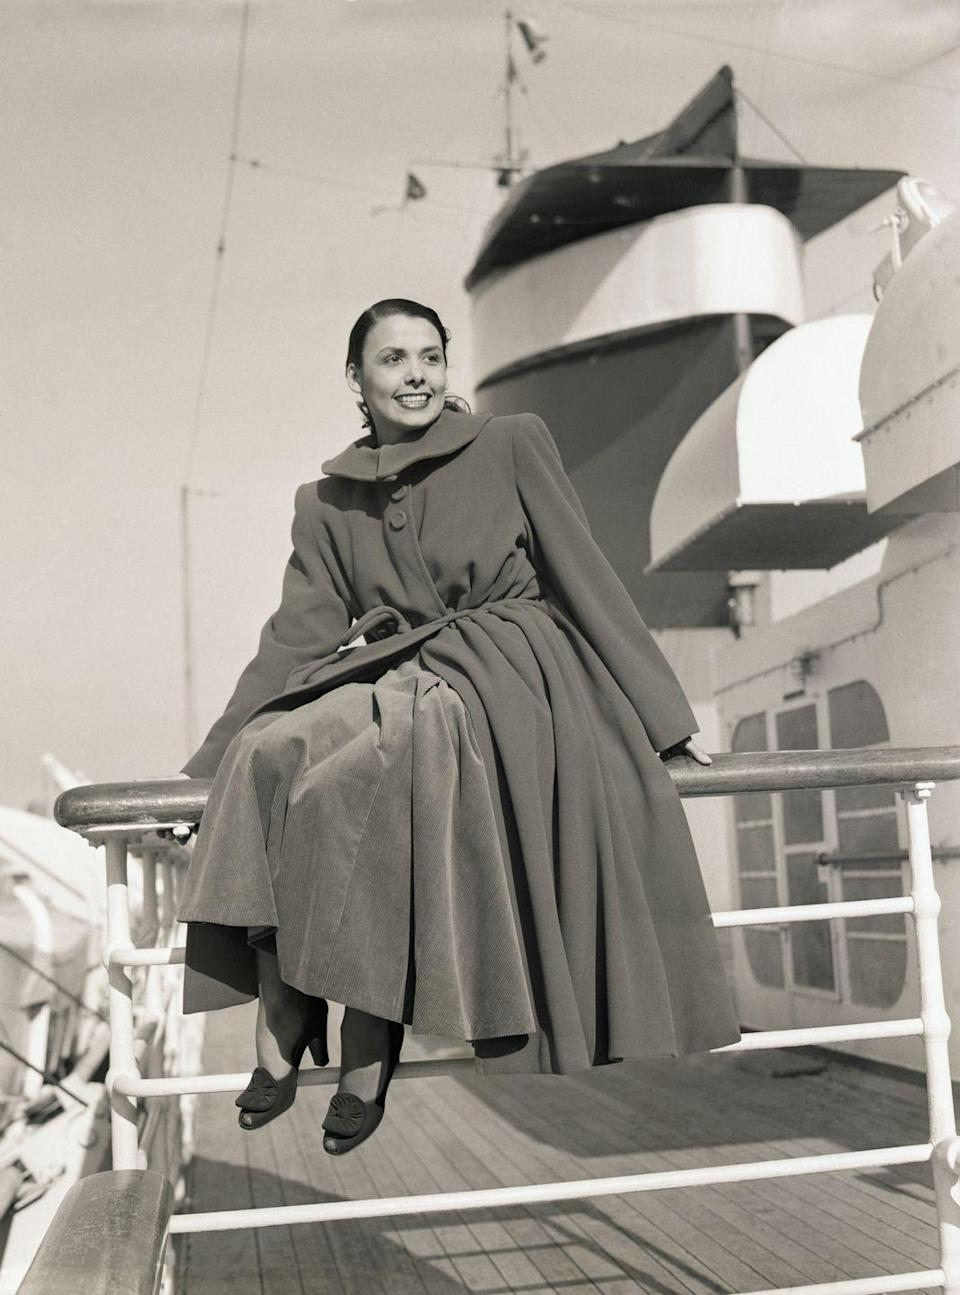 <p>In December 1947, Lena Horne set sail on the SS America. The famous singer, who was starring in shows in Paris and London at the time, journeyed home to St. Albans, New York to spend the holidays with her family. </p>